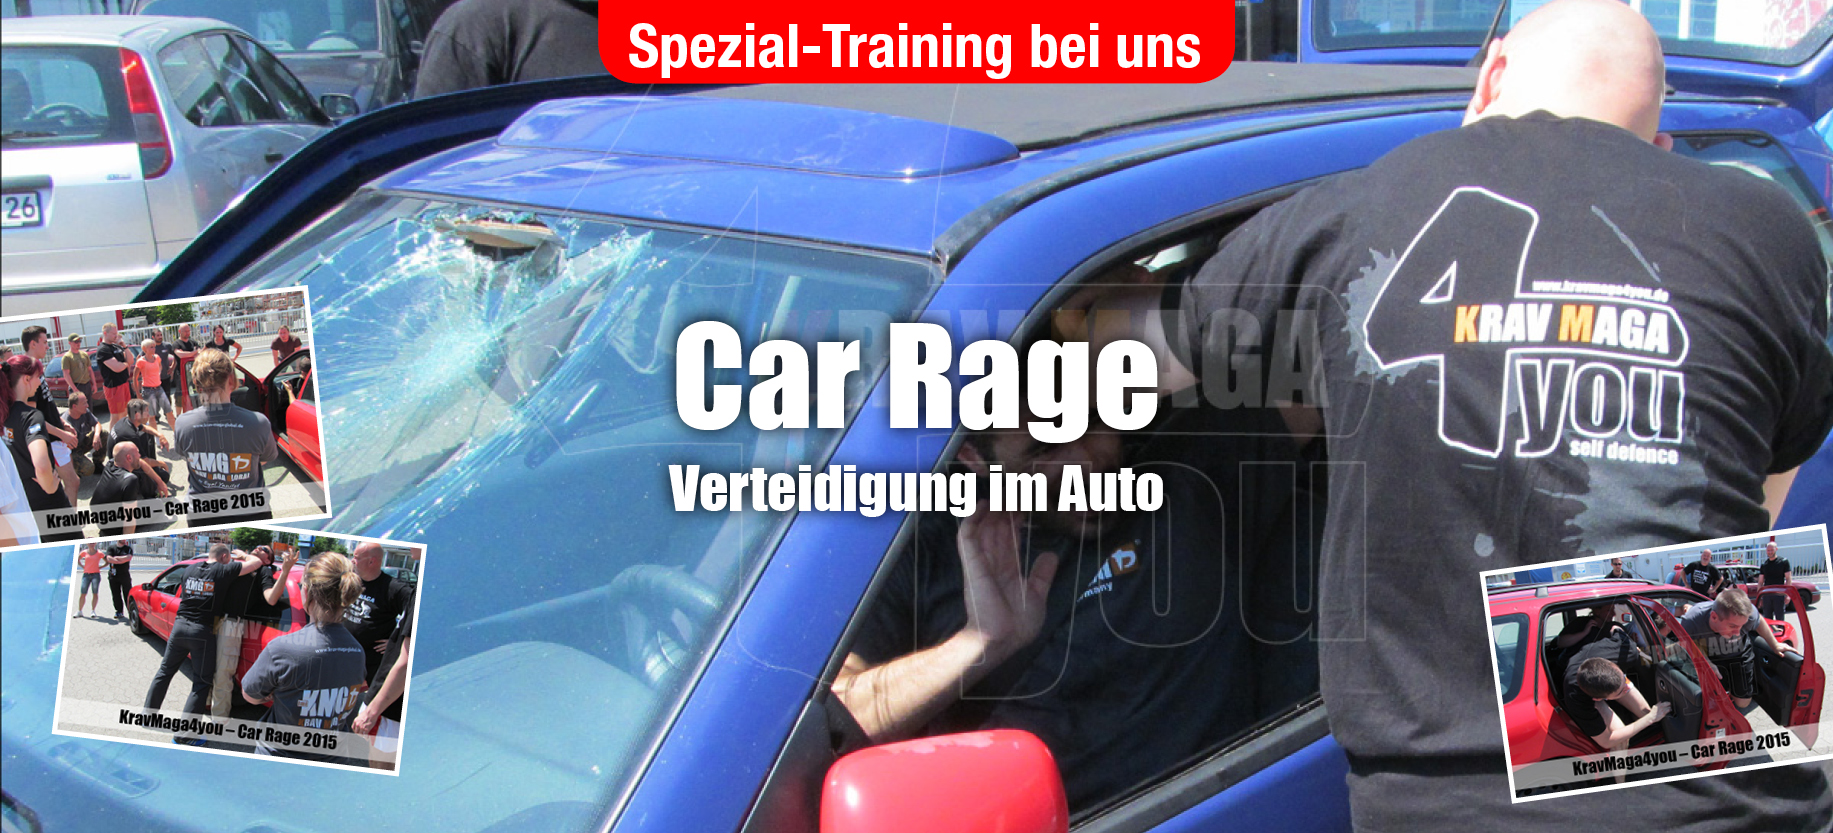 spezial-training_Car Rage